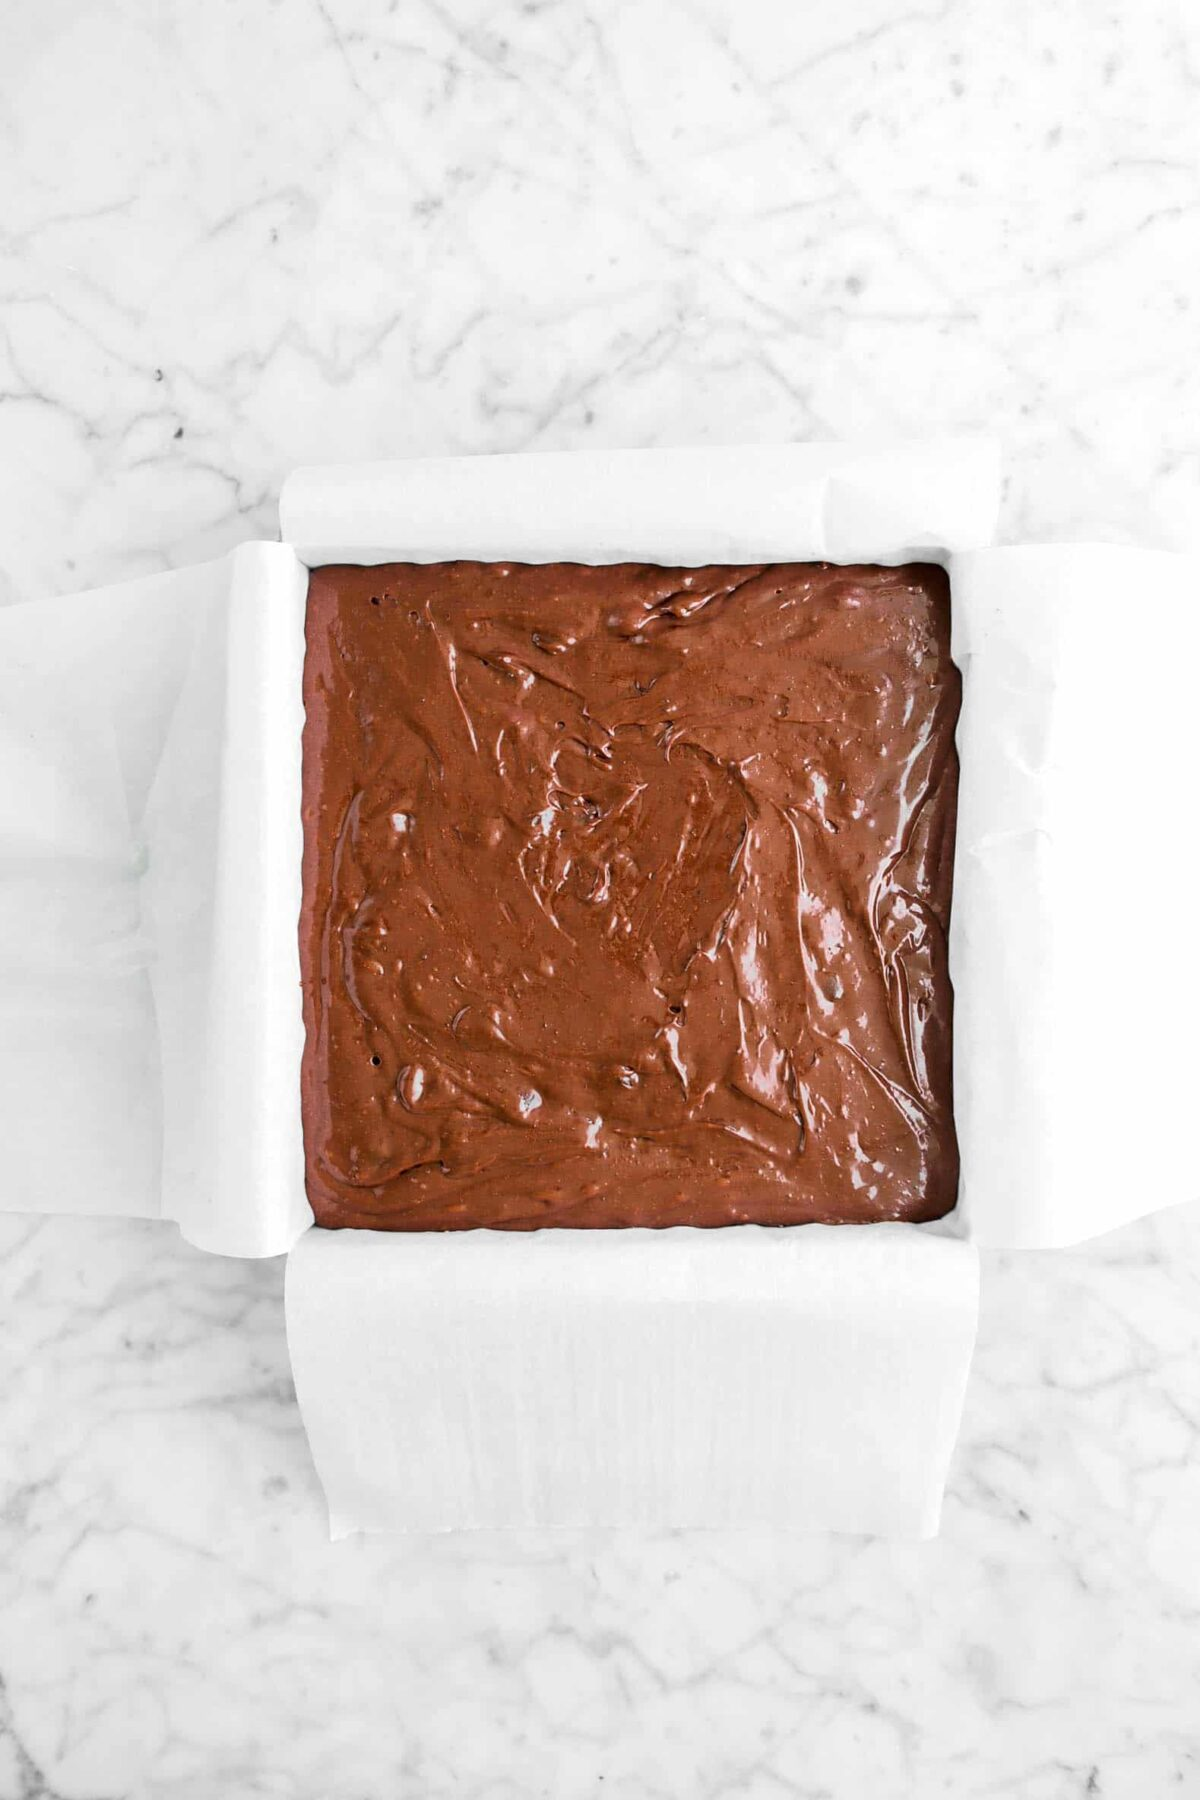 brownie batter in a lined rectangular pan